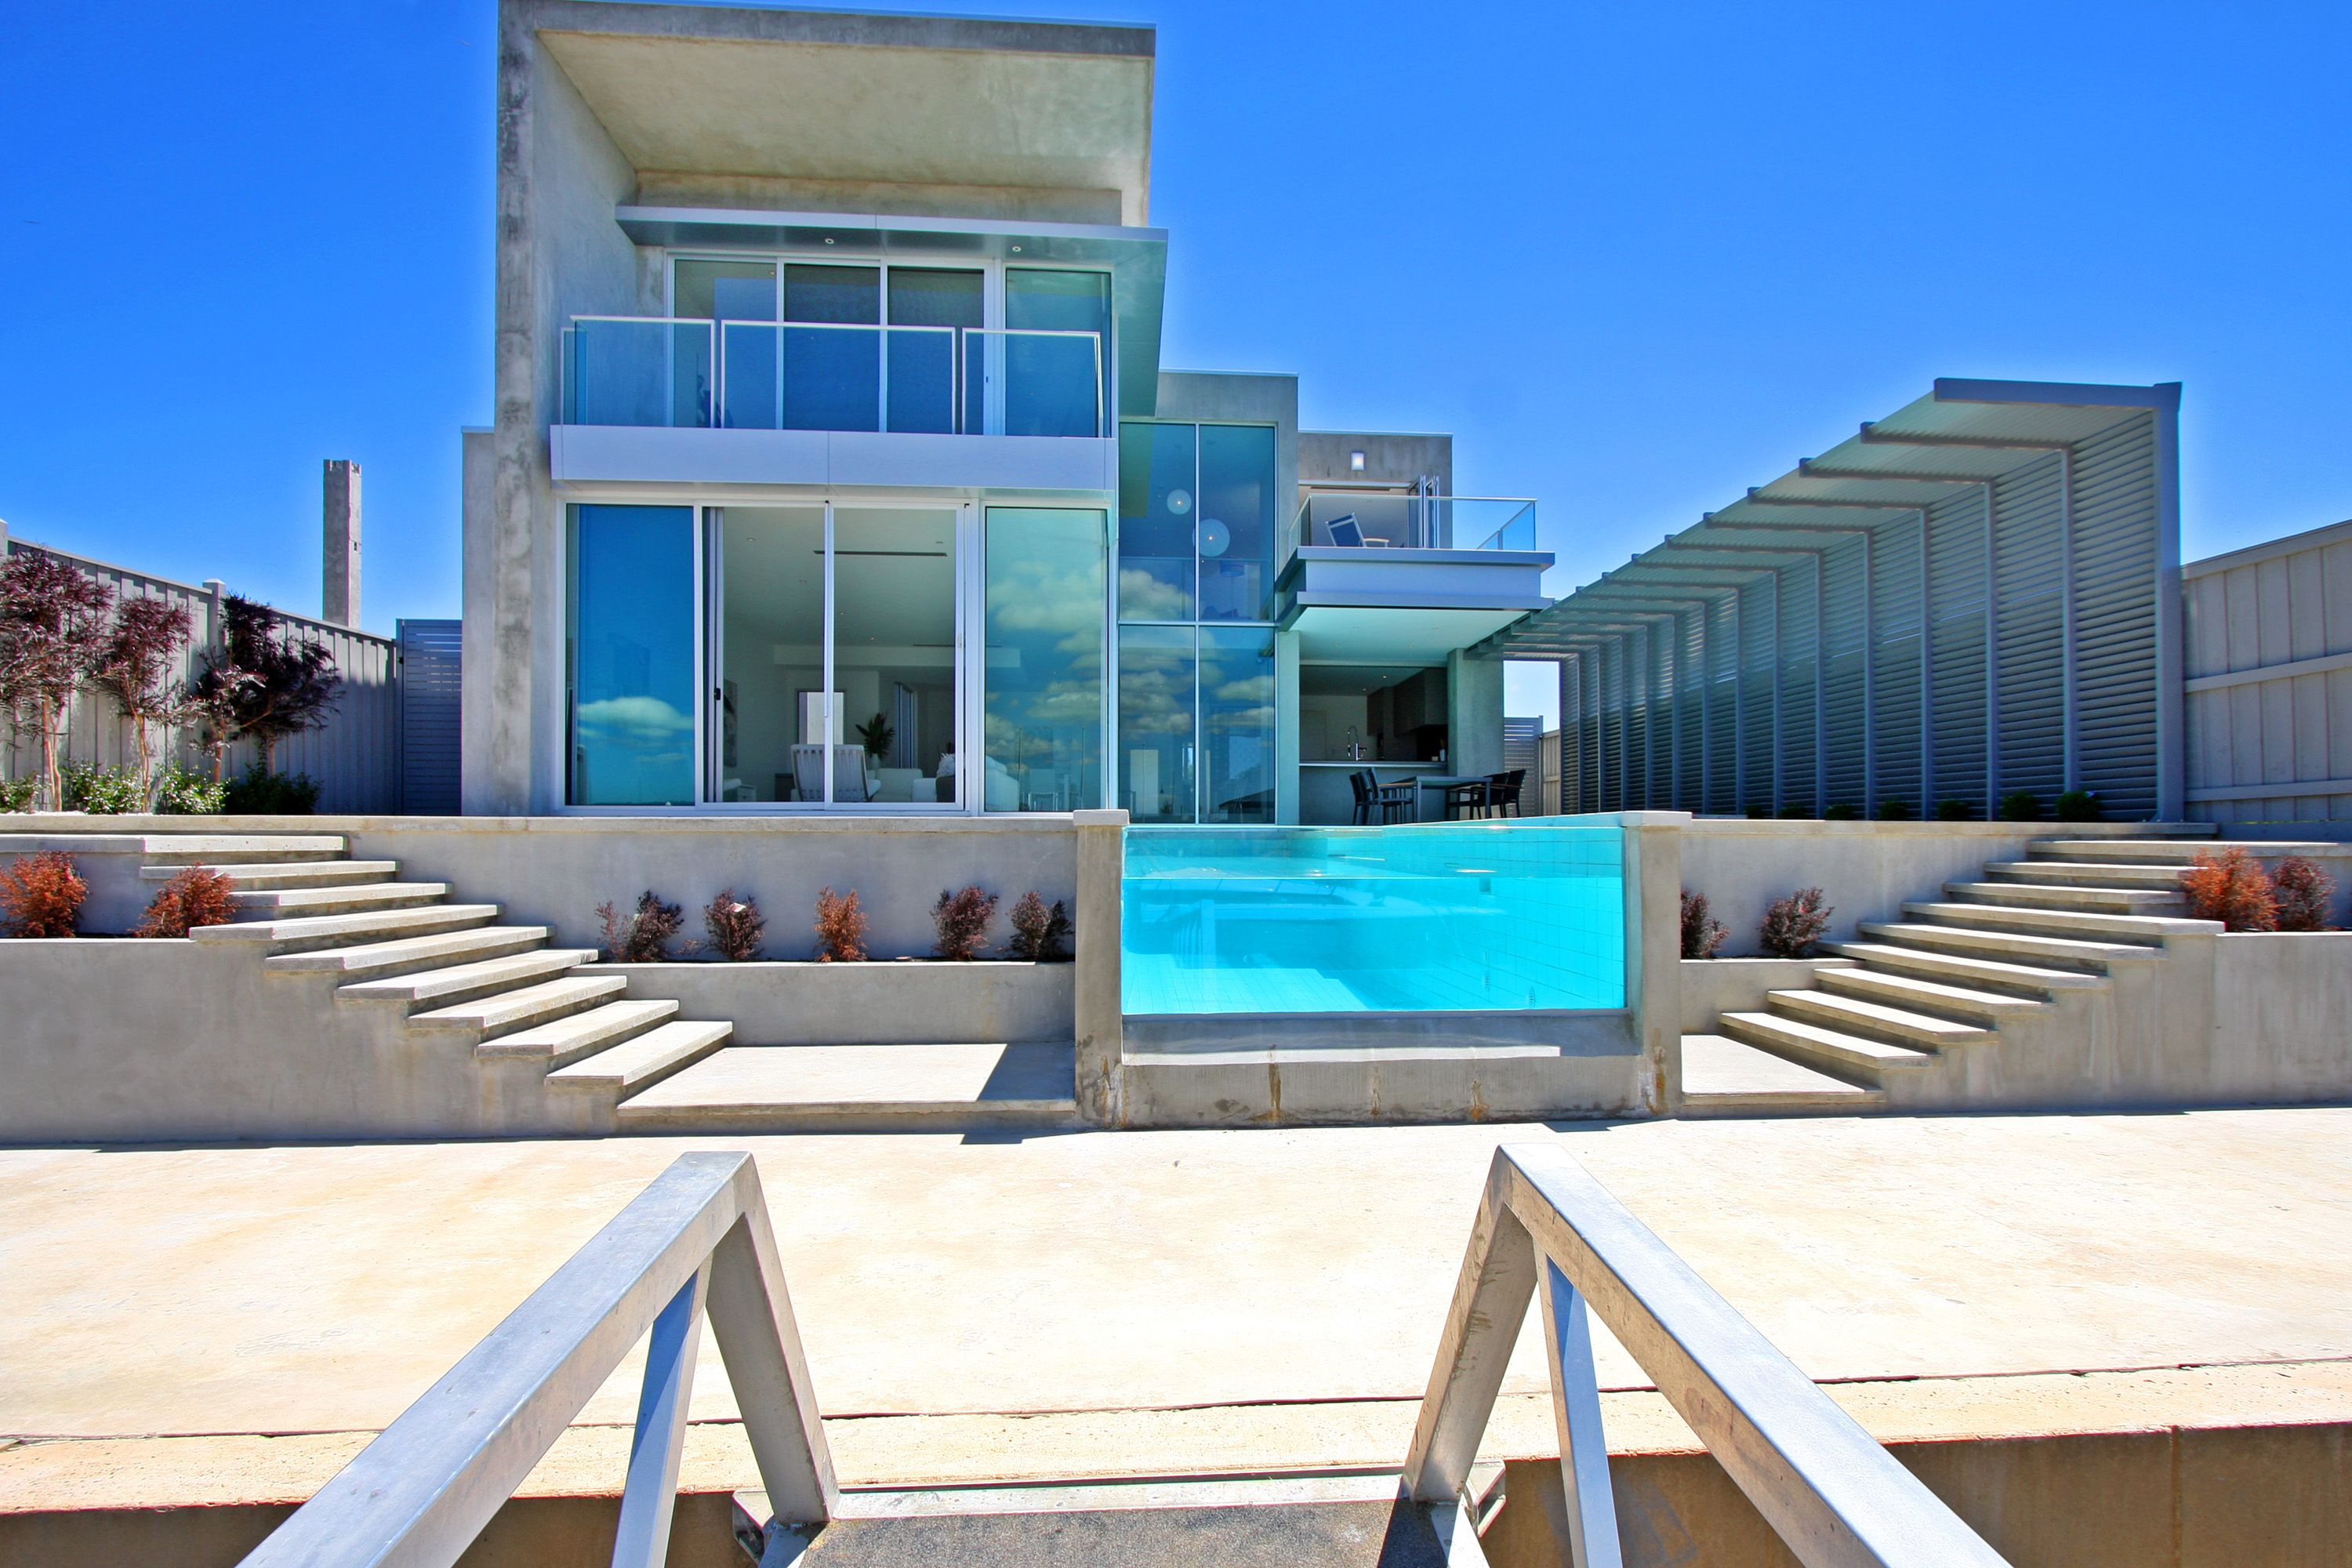 Nice houses on the beach - Beautiful Houses On The Beach Marvelous Architecture Beach House Design With Blue Glass Swimming Pool